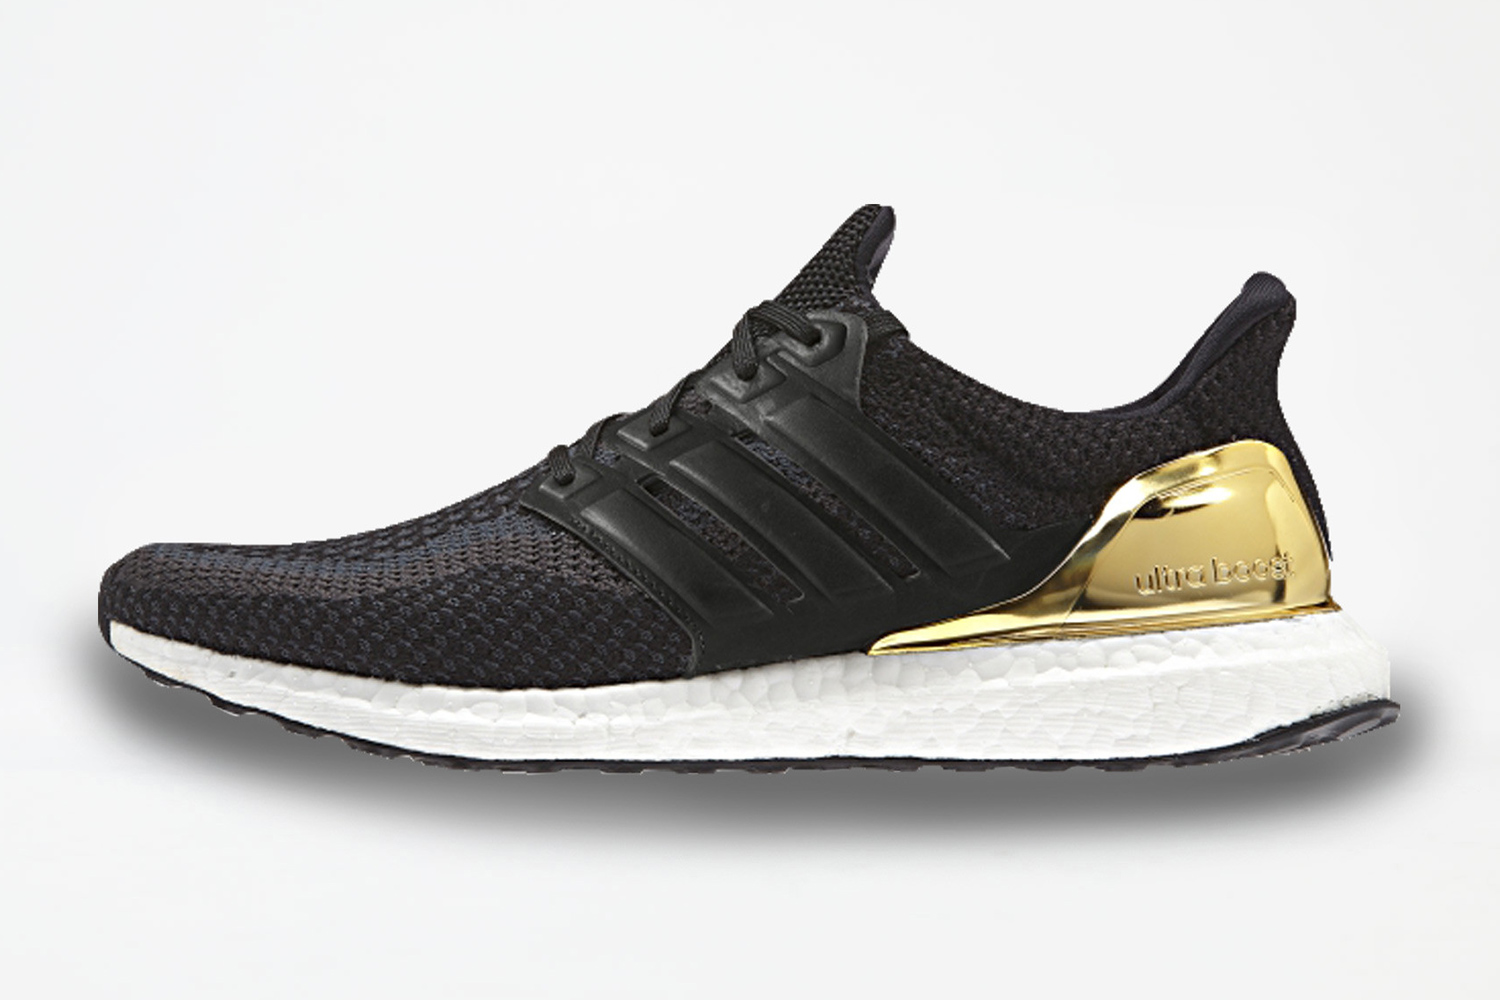 Adidas Ultra Boost Quot Olympic Medals Quot Pack Ballerstatus Com